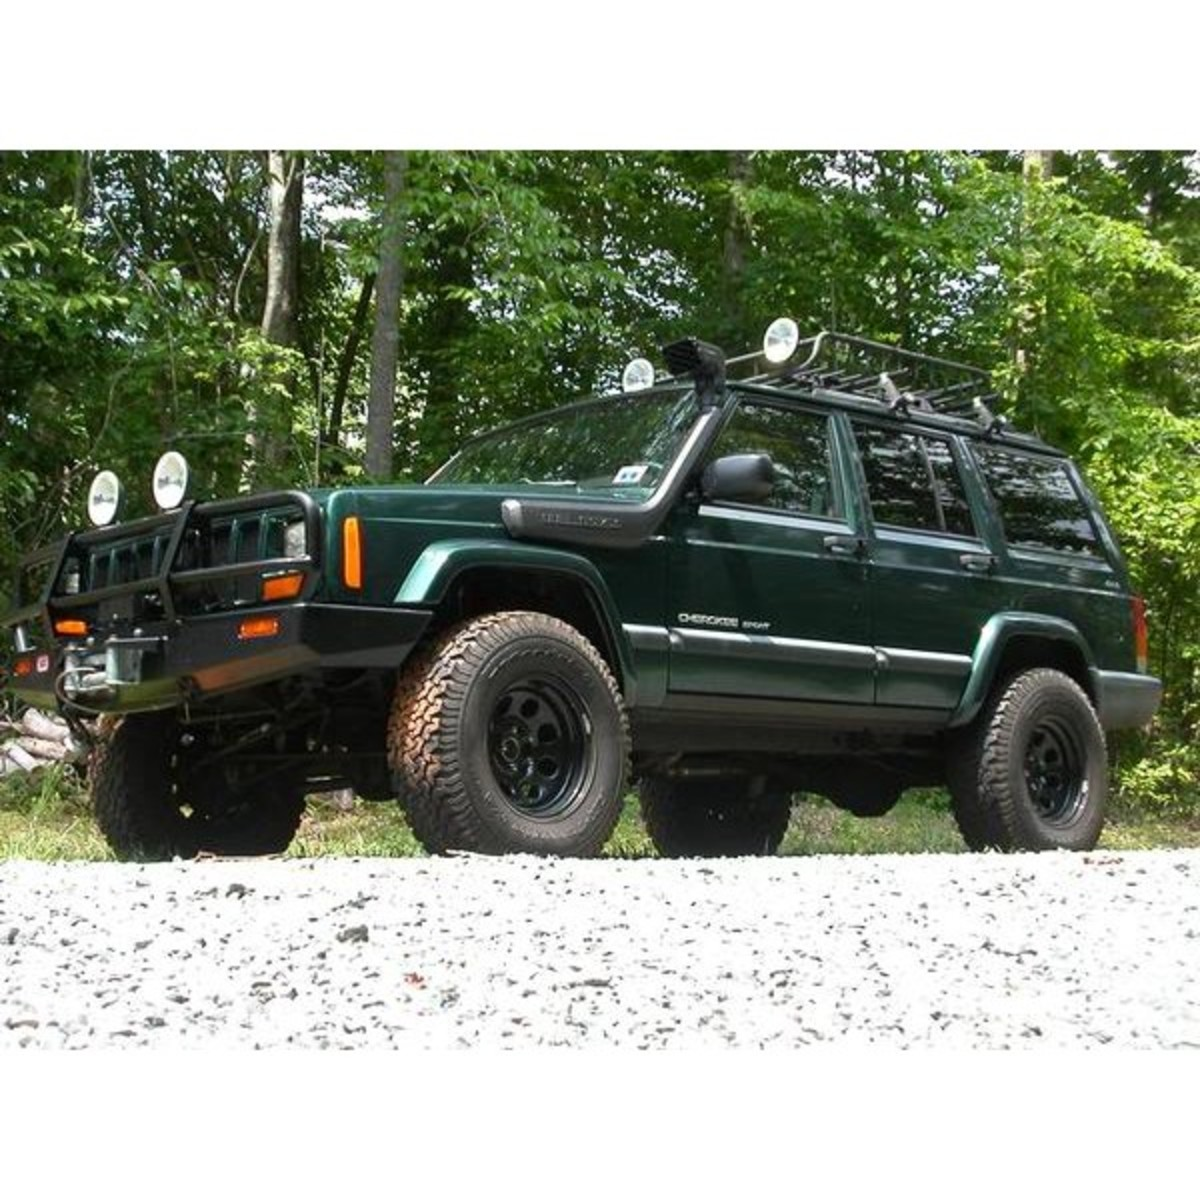 Jeep Cherokee XJ With Snorkel Installed